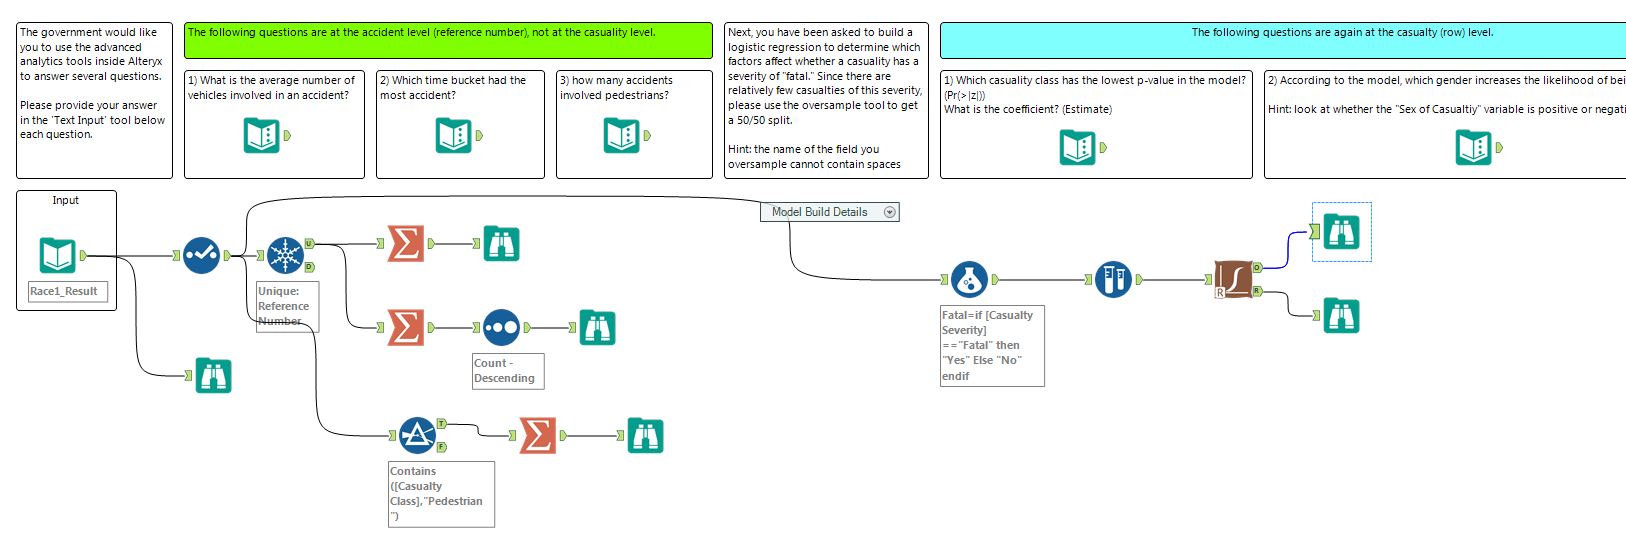 2016-10-10 10_58_55-Alteryx Designer x64 - Race 3_question_Solution.yxmd_.png